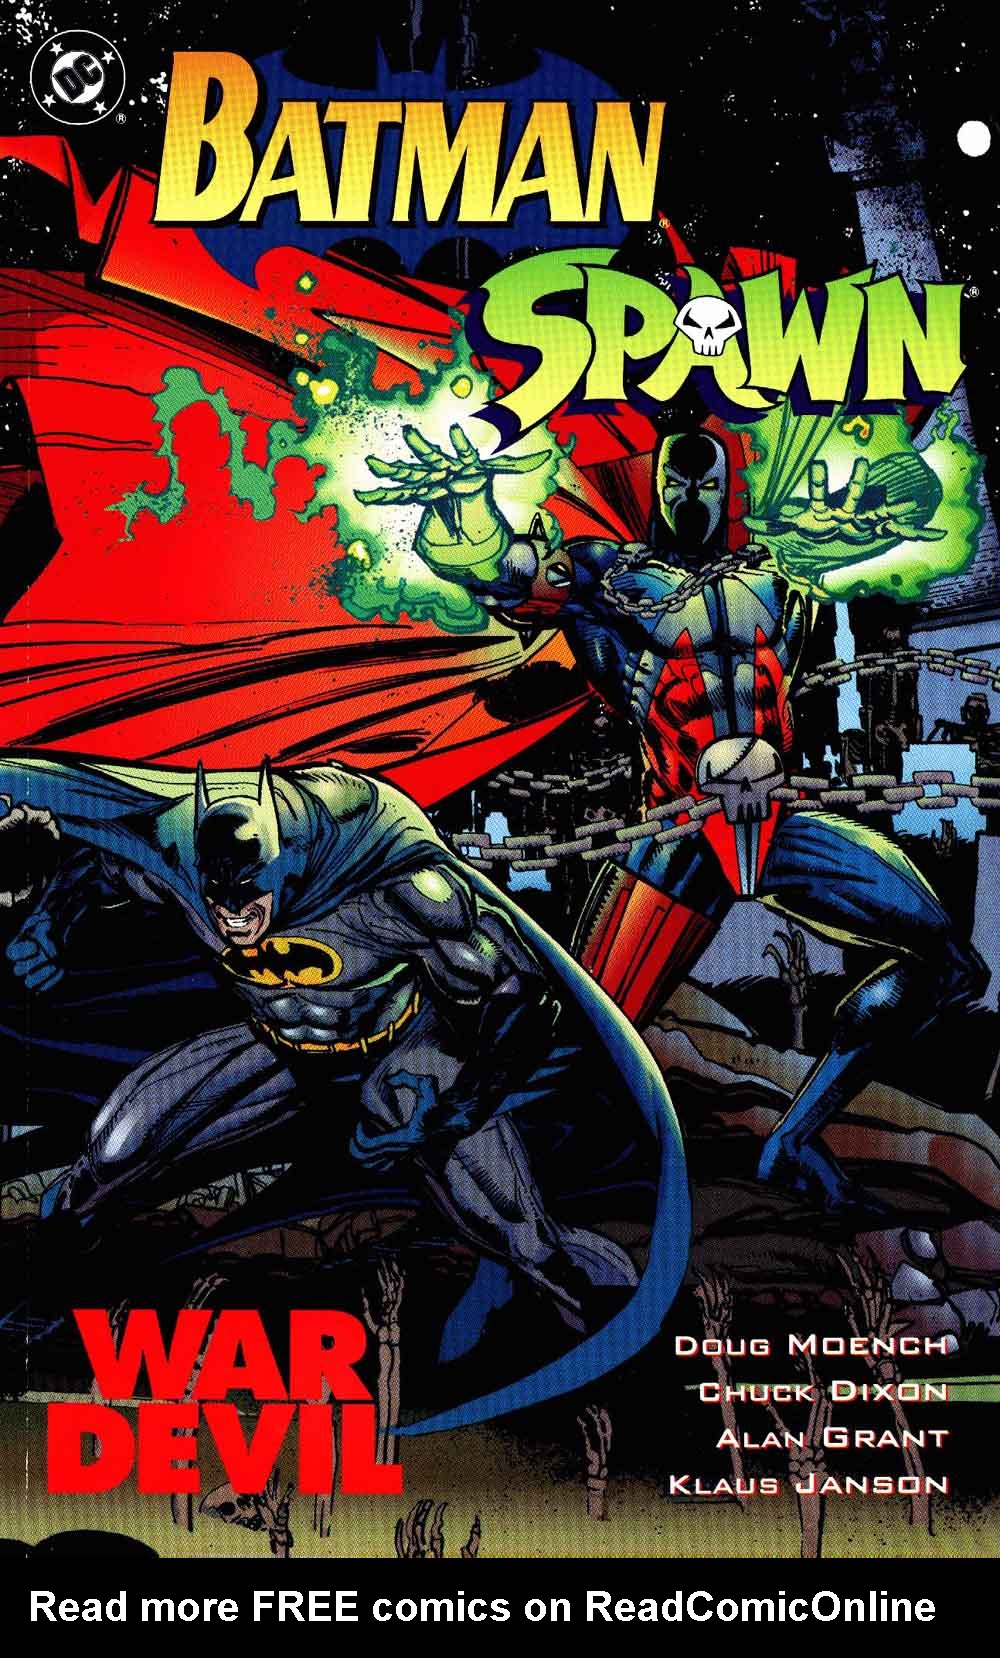 Batman-Spawn: War Devil Full Page 1